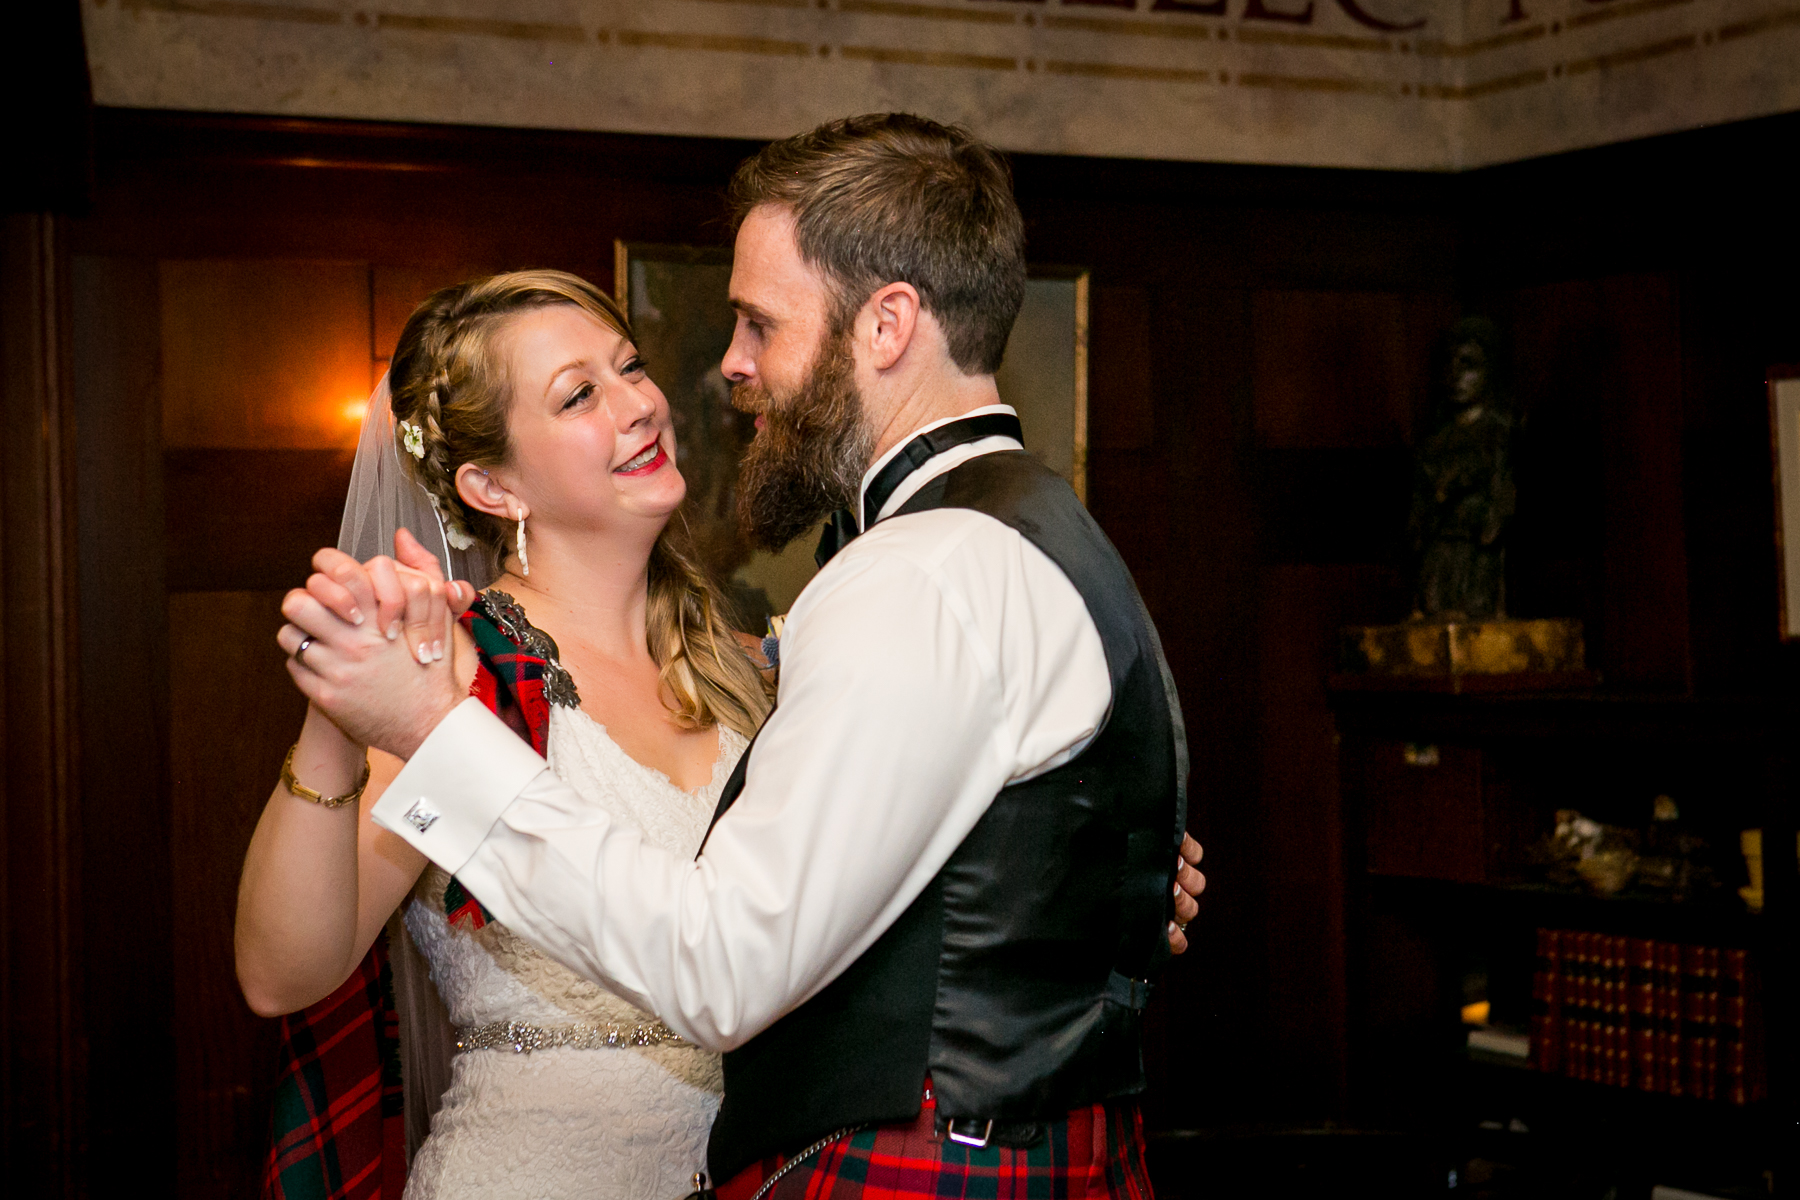 bride and groom first dance during wedding reception at swedenborgian church in san francisco best wedding photographer